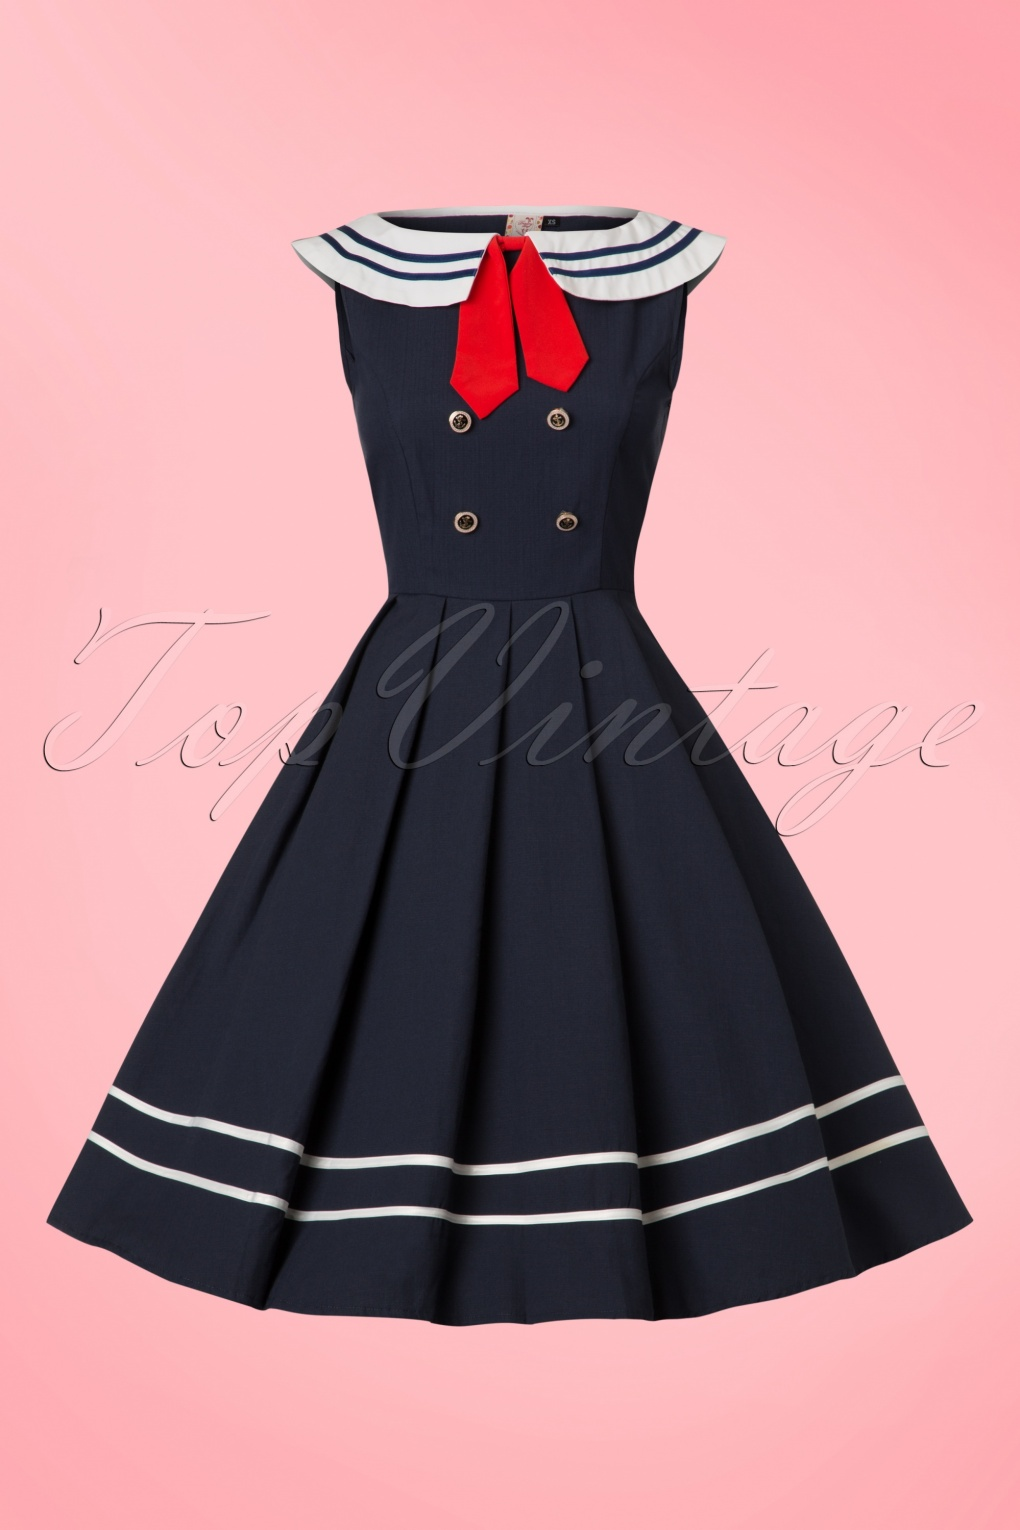 50s Dresses, Pinup Dresses, Swing Dresses 50s Aquarius Sailor Swing Dress in Navy £42.91 AT vintagedancer.com